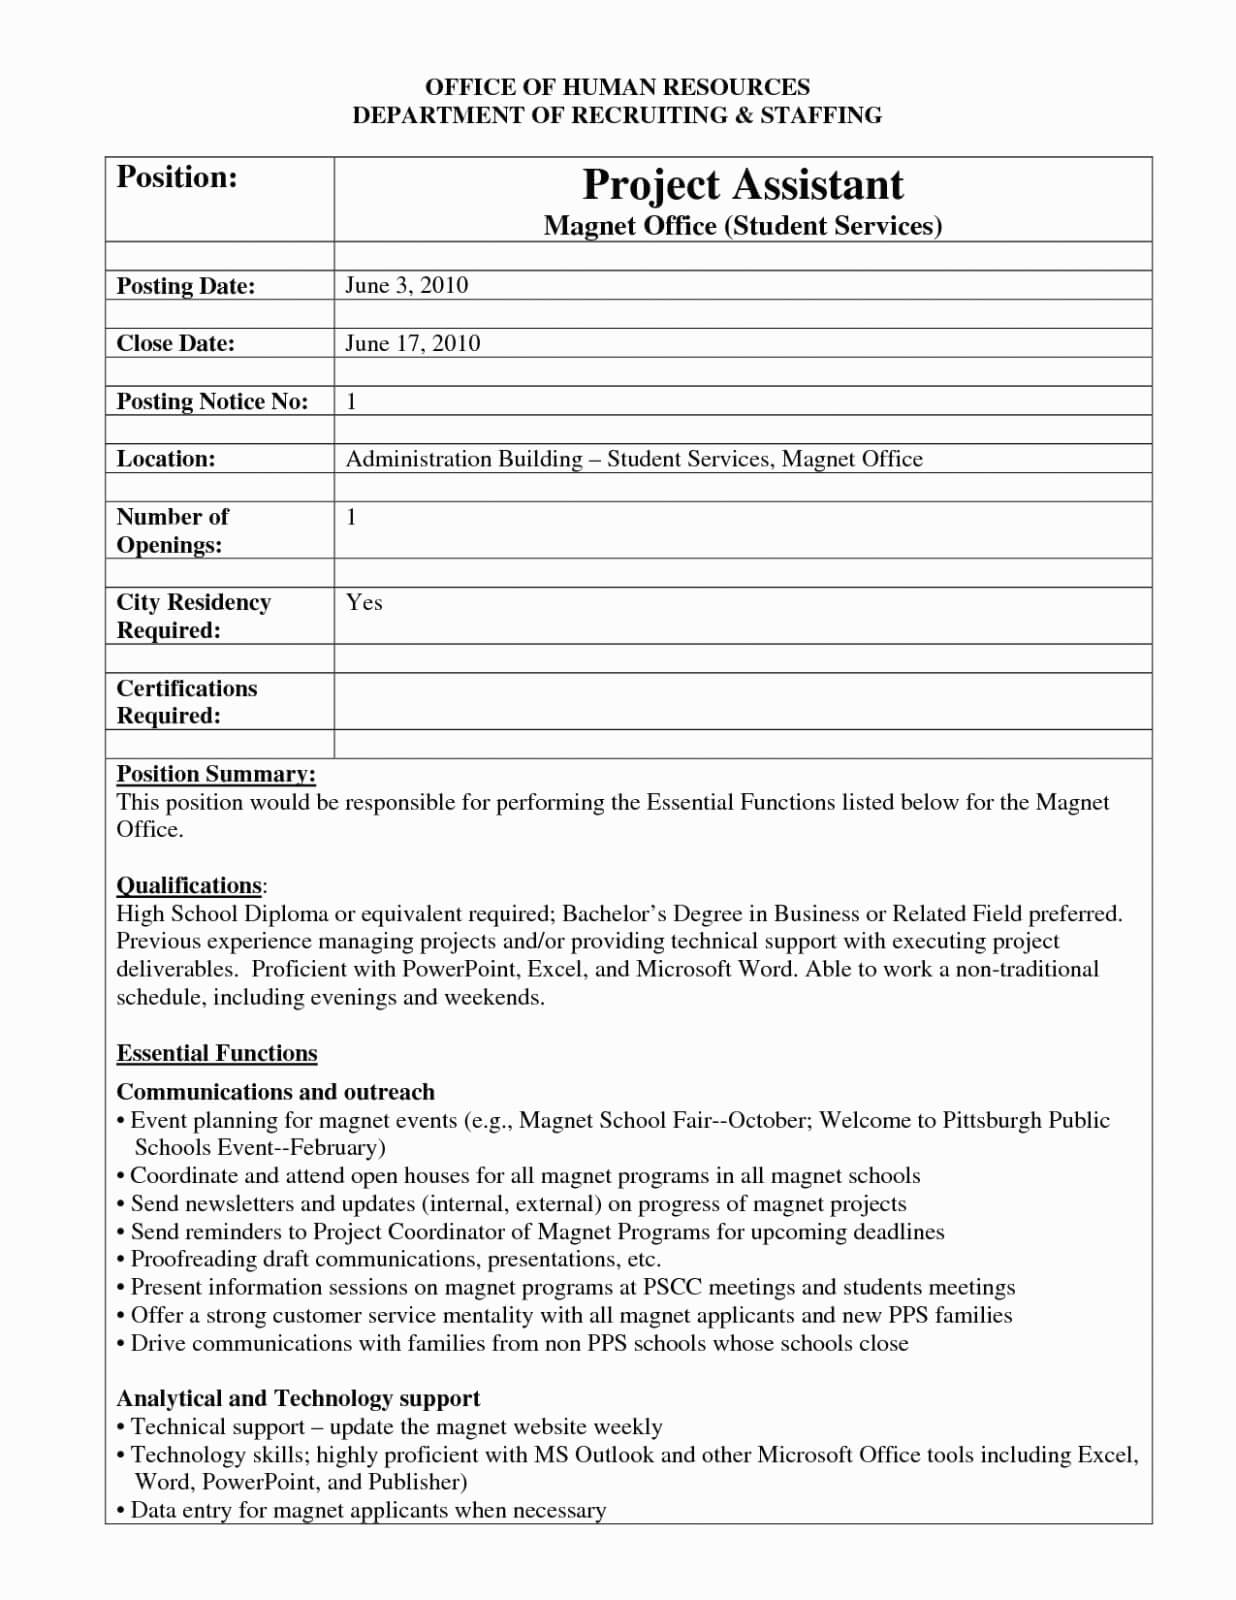 Internal Job Posting Template Word - Atlantaauctionco Pertaining To Internal Job Posting Template Word